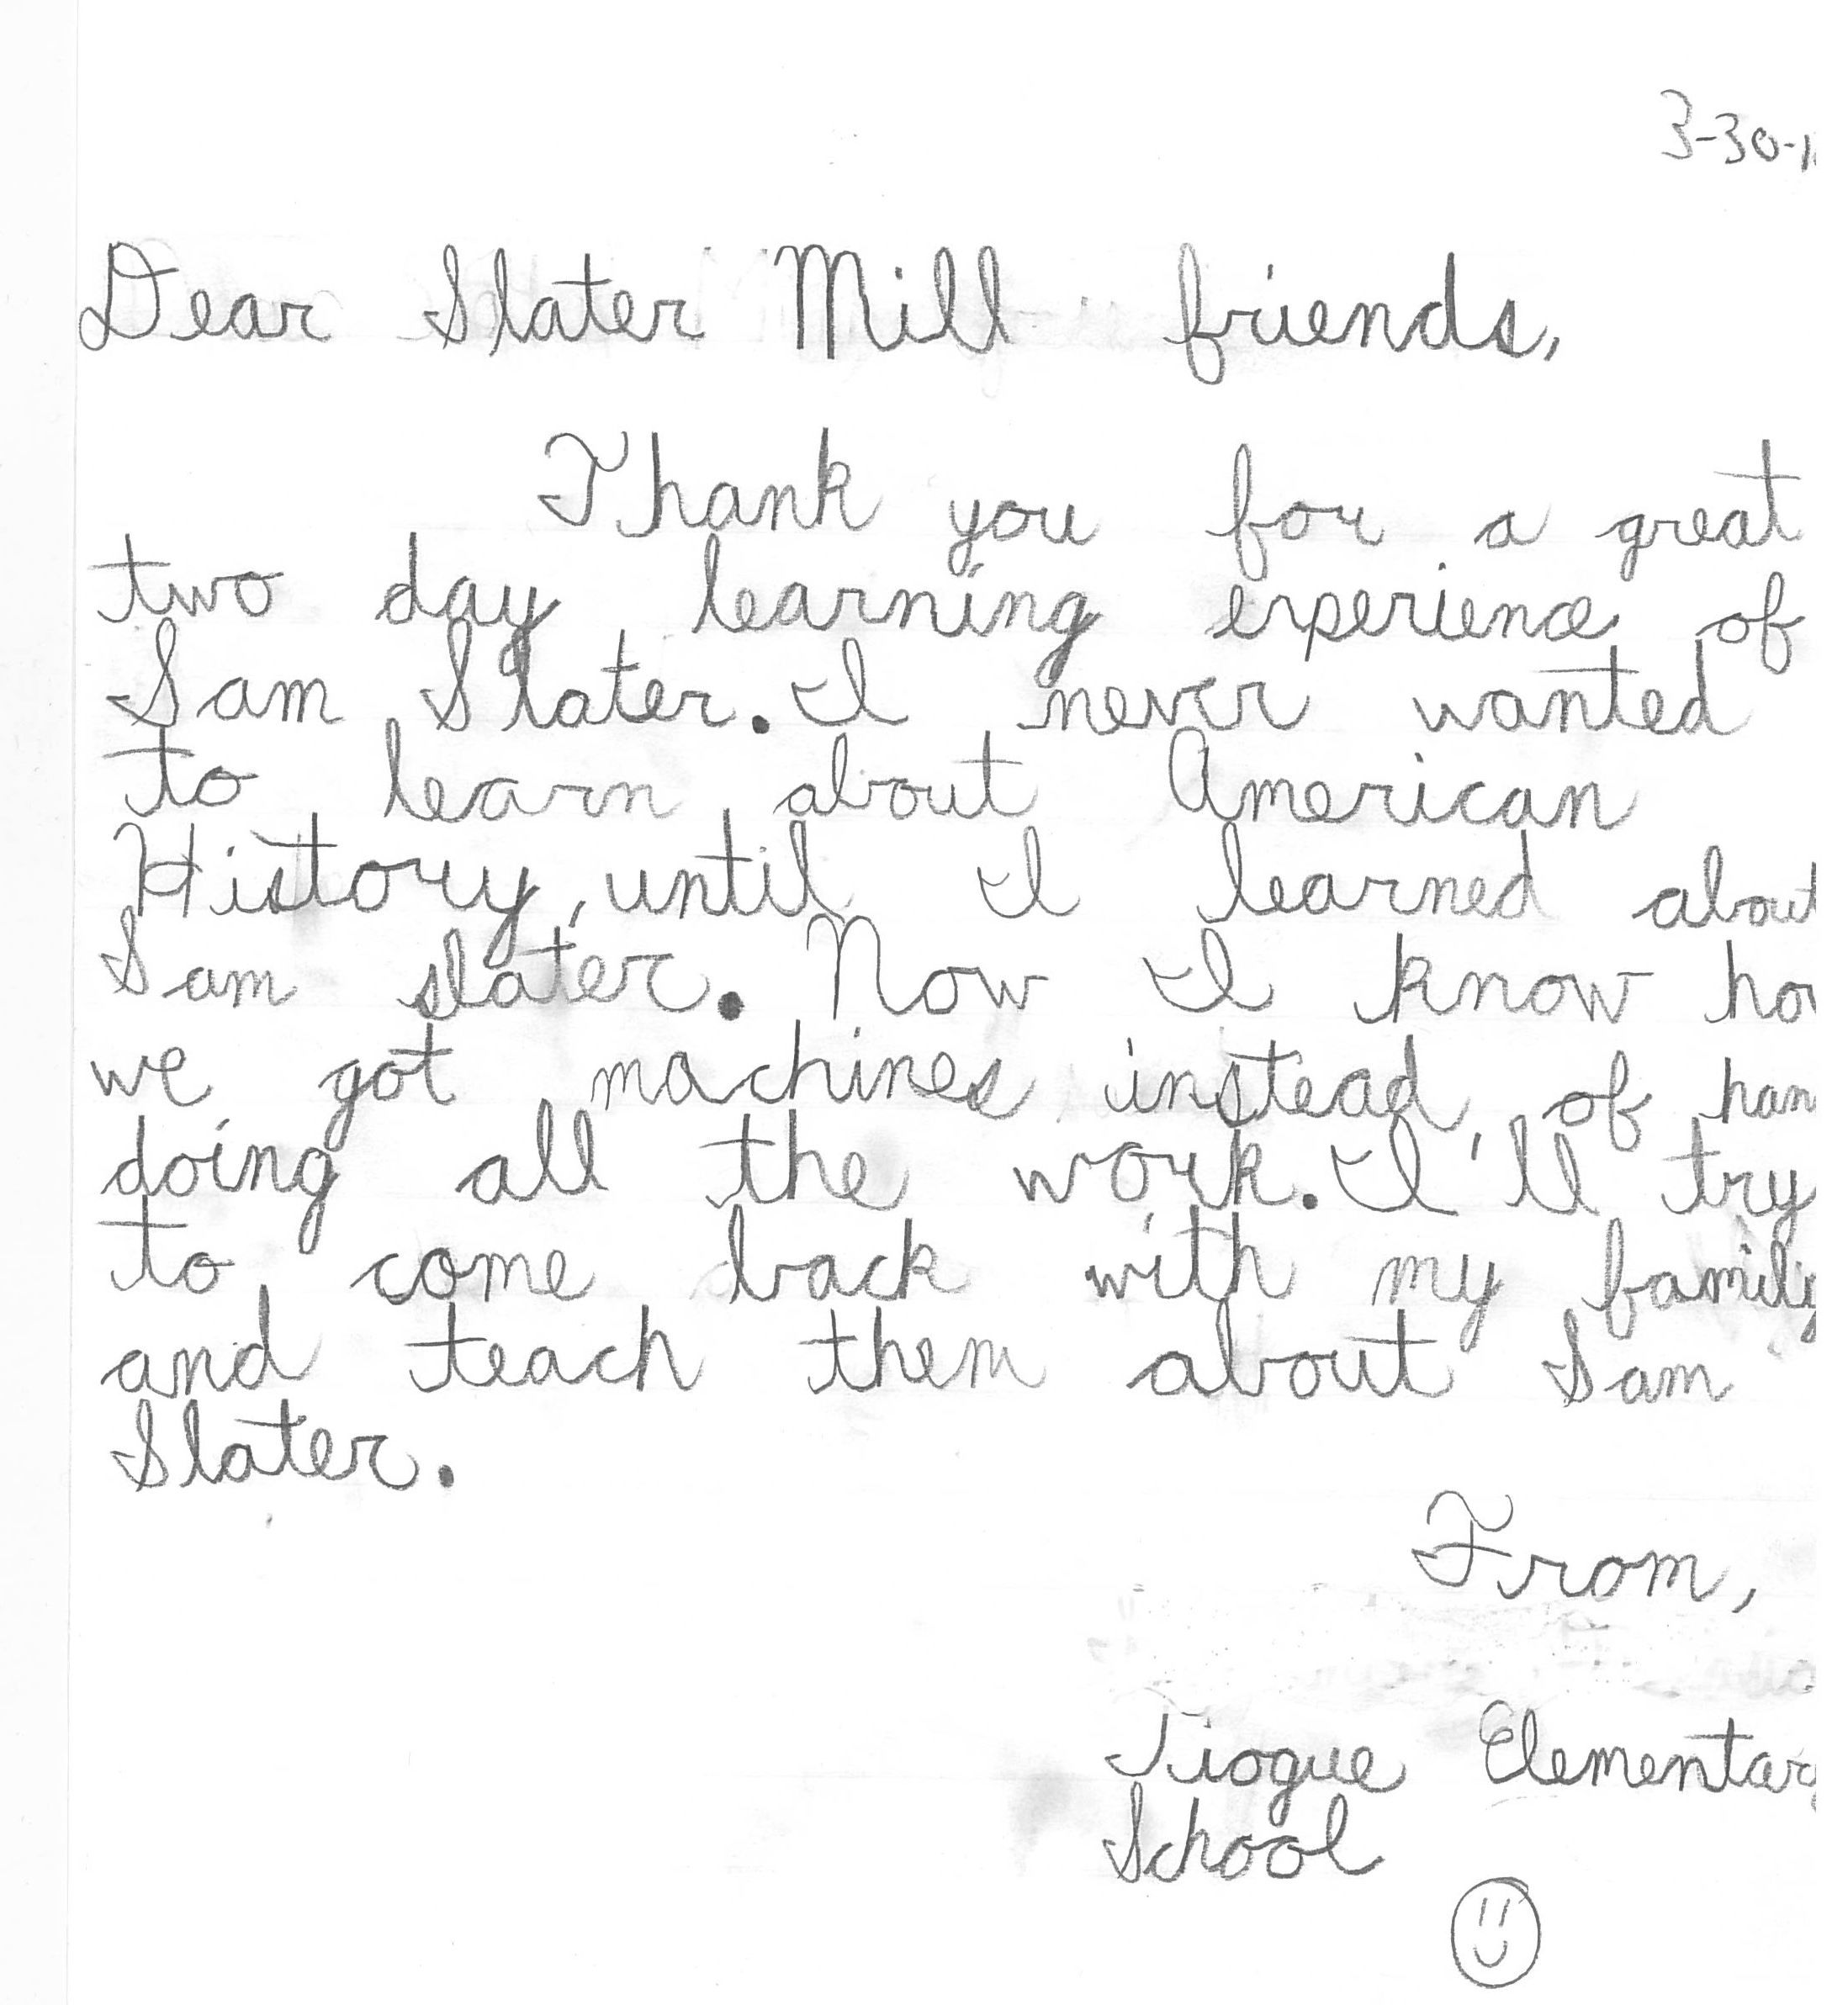 Thank You Note From An Elementary School Student After Their Field